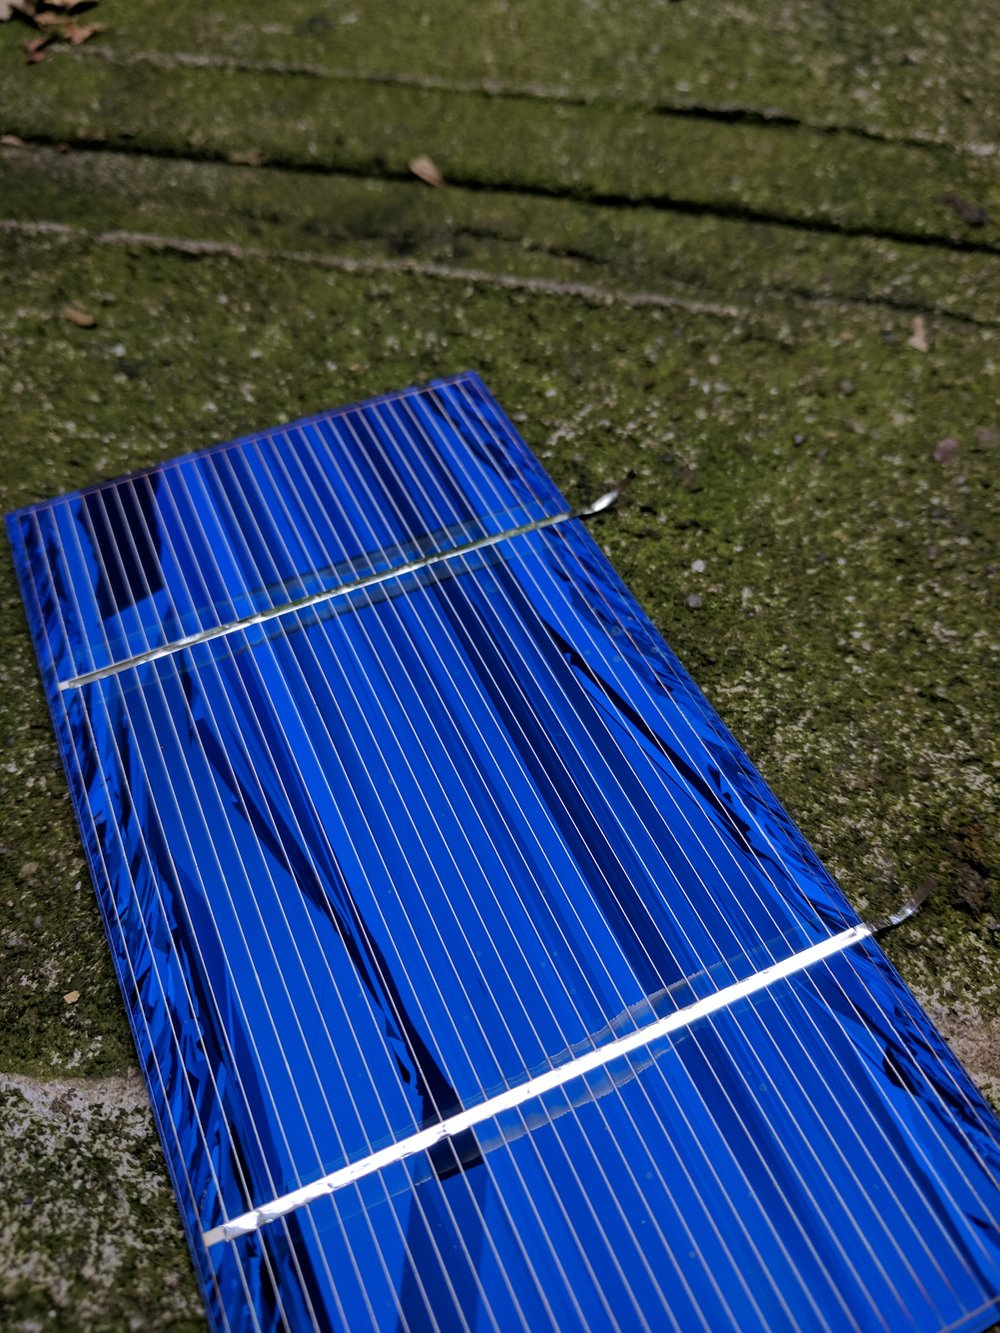 Front of solar cell. The metallic strip running across is soldered to the back of another solar cell to connect them in series and generate higher voltages.